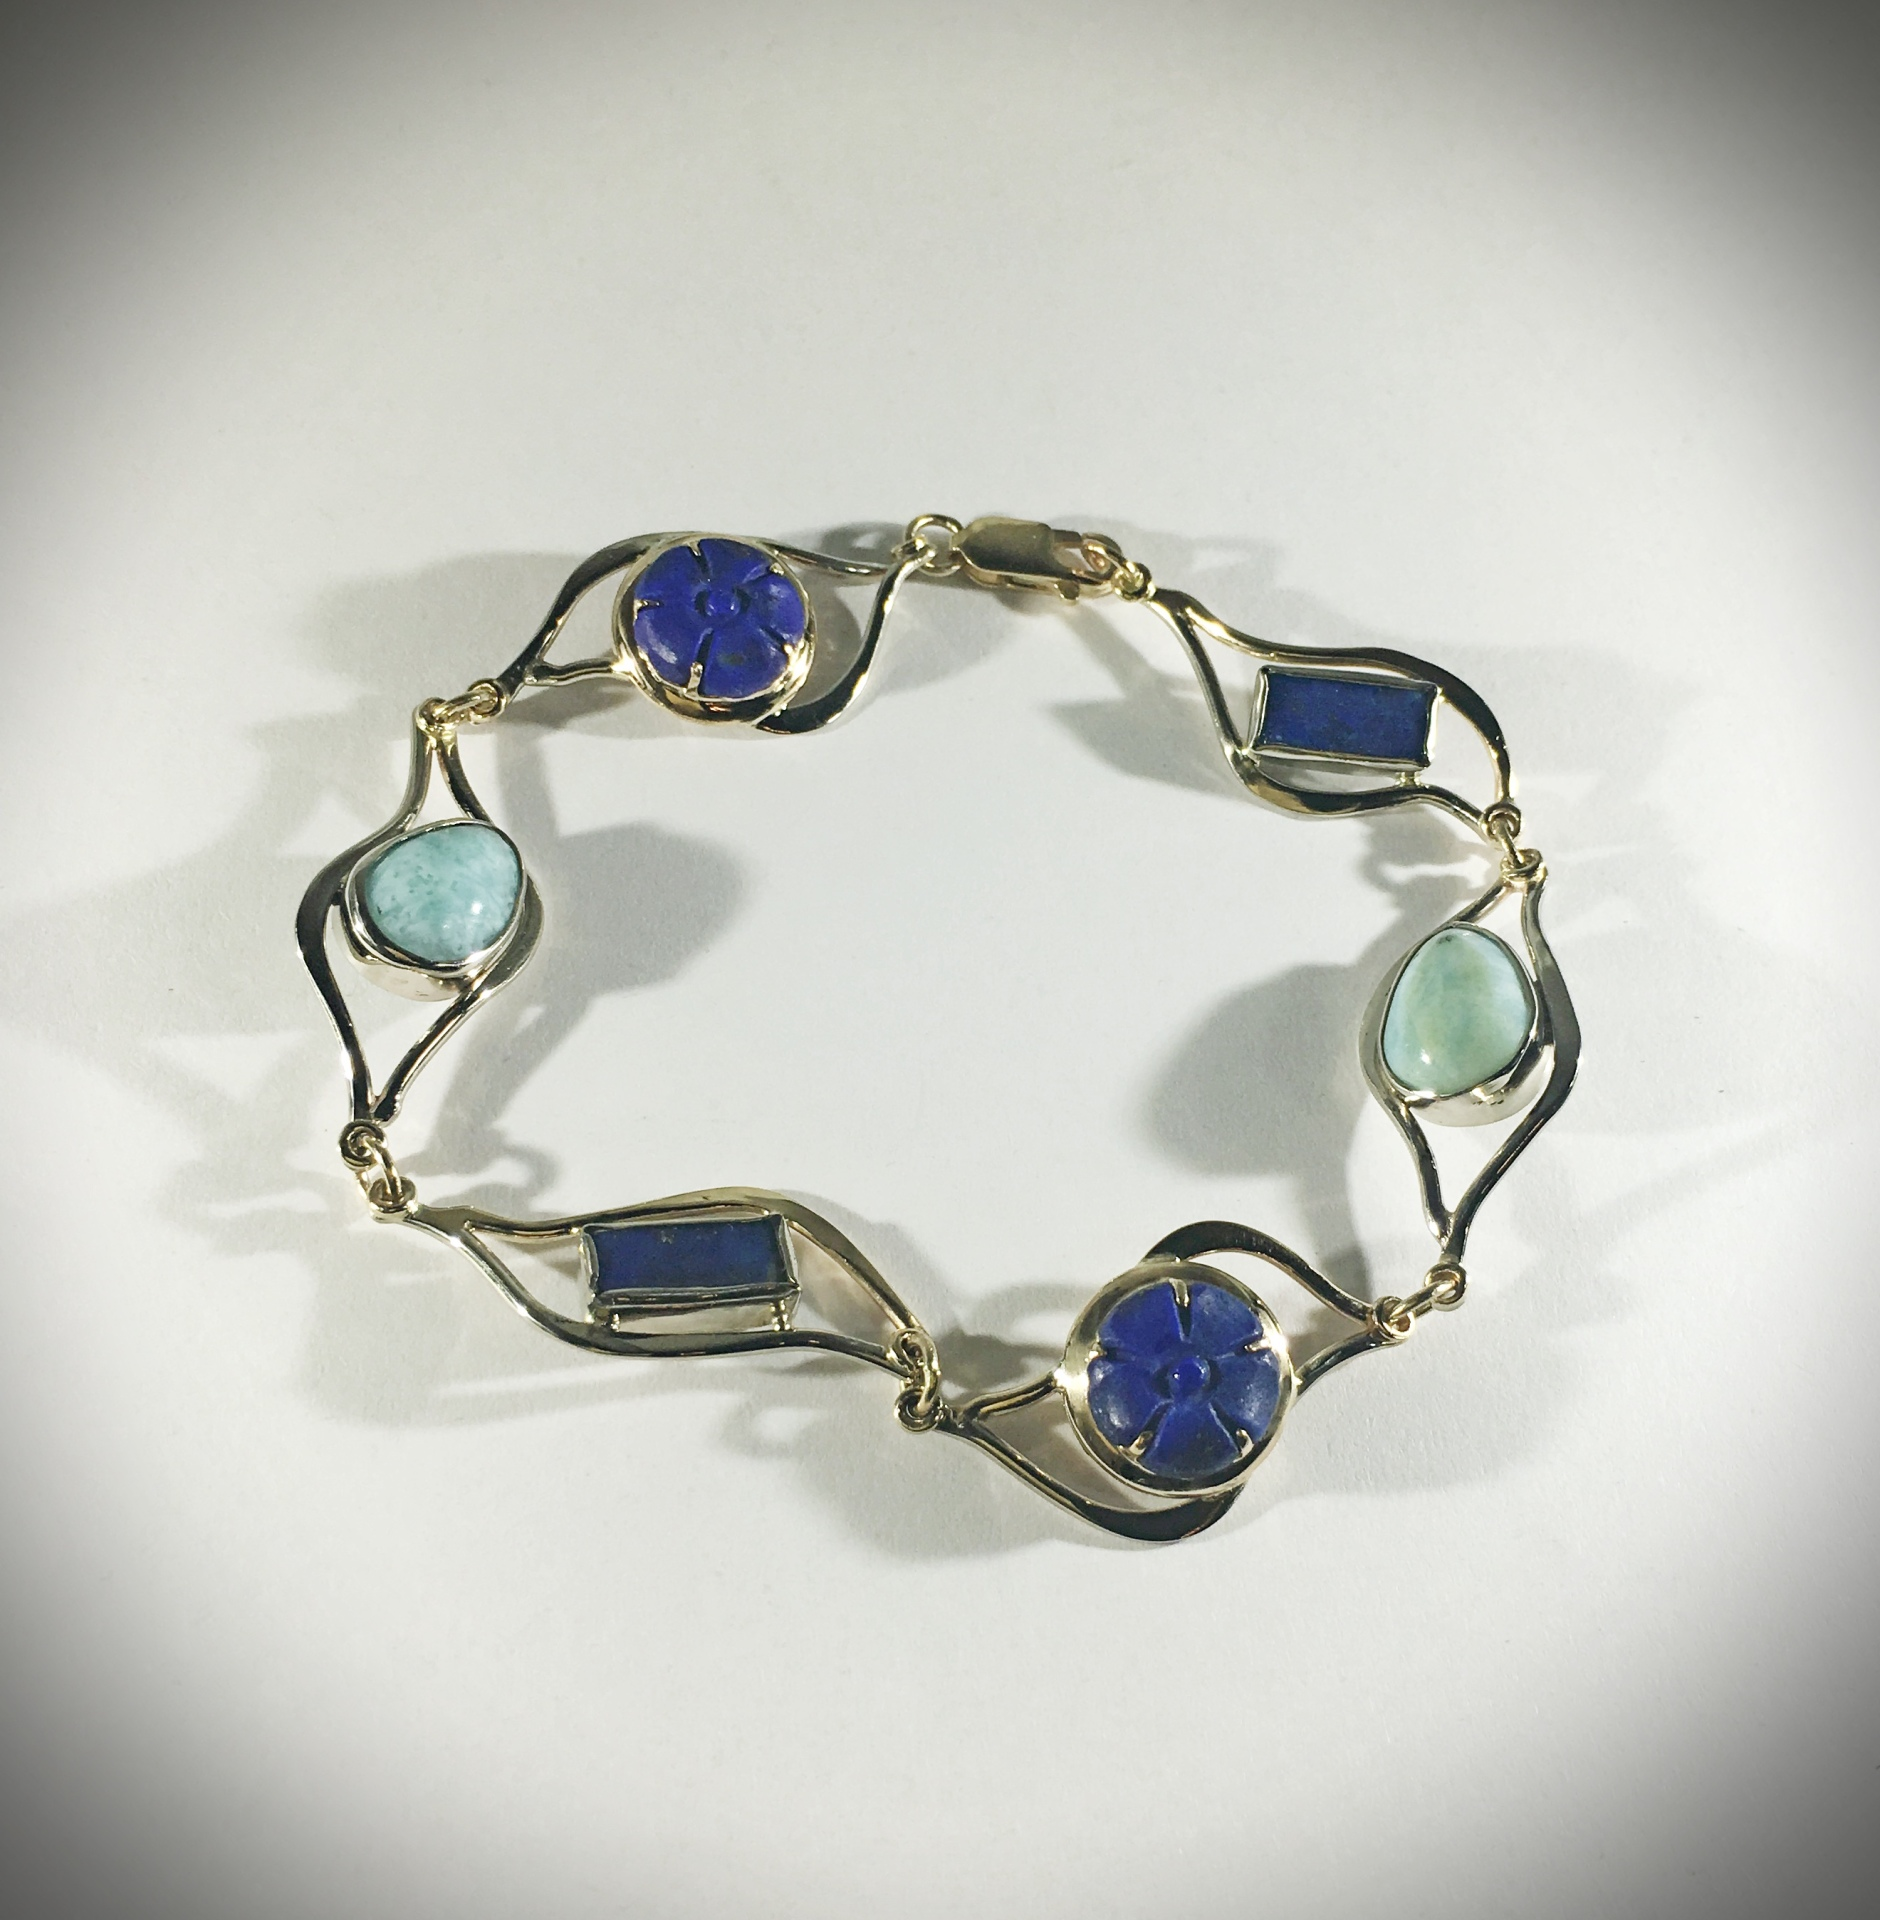 Patty Conlin -Jewelry